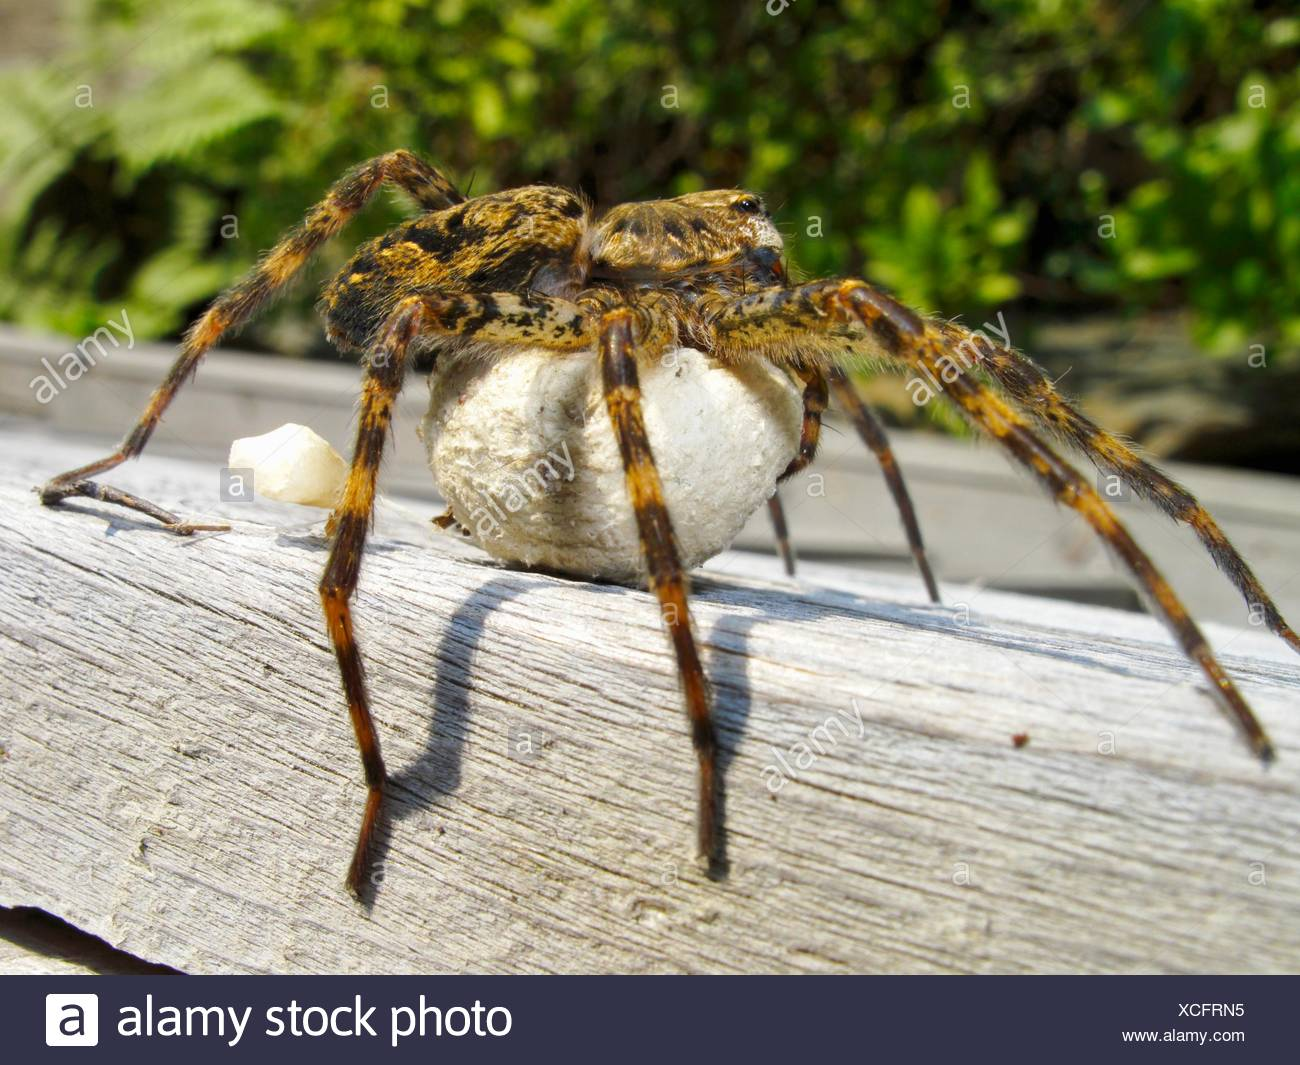 A gigantic North American species of fishing spider that is protecting a ball of eggs underneath it - Stock Image